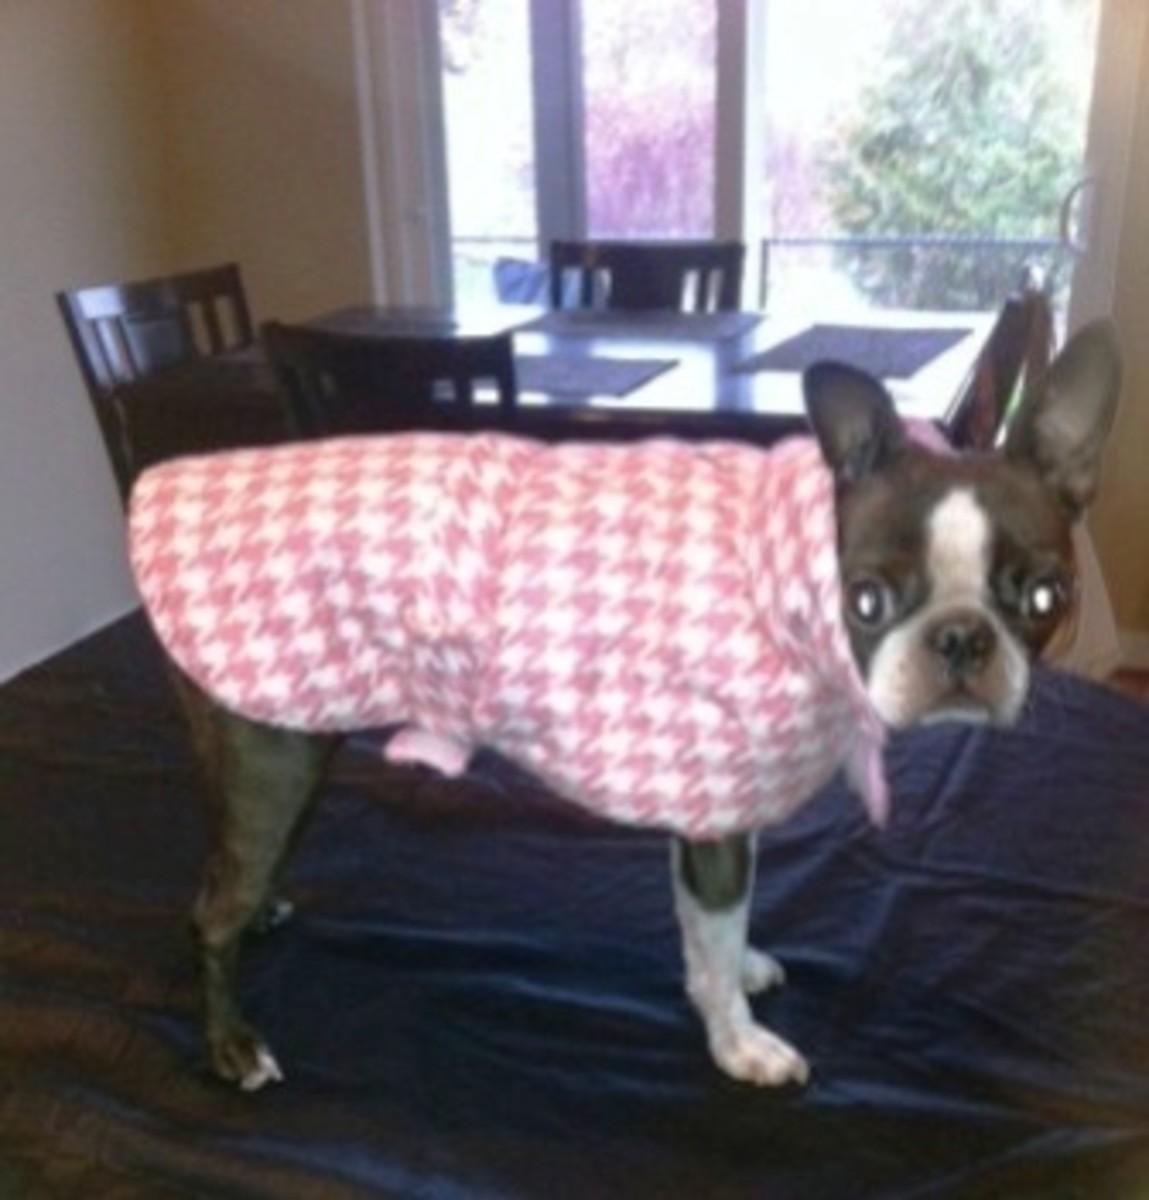 Juneau is a very small Boston terrier who weighs about 12 pounds.